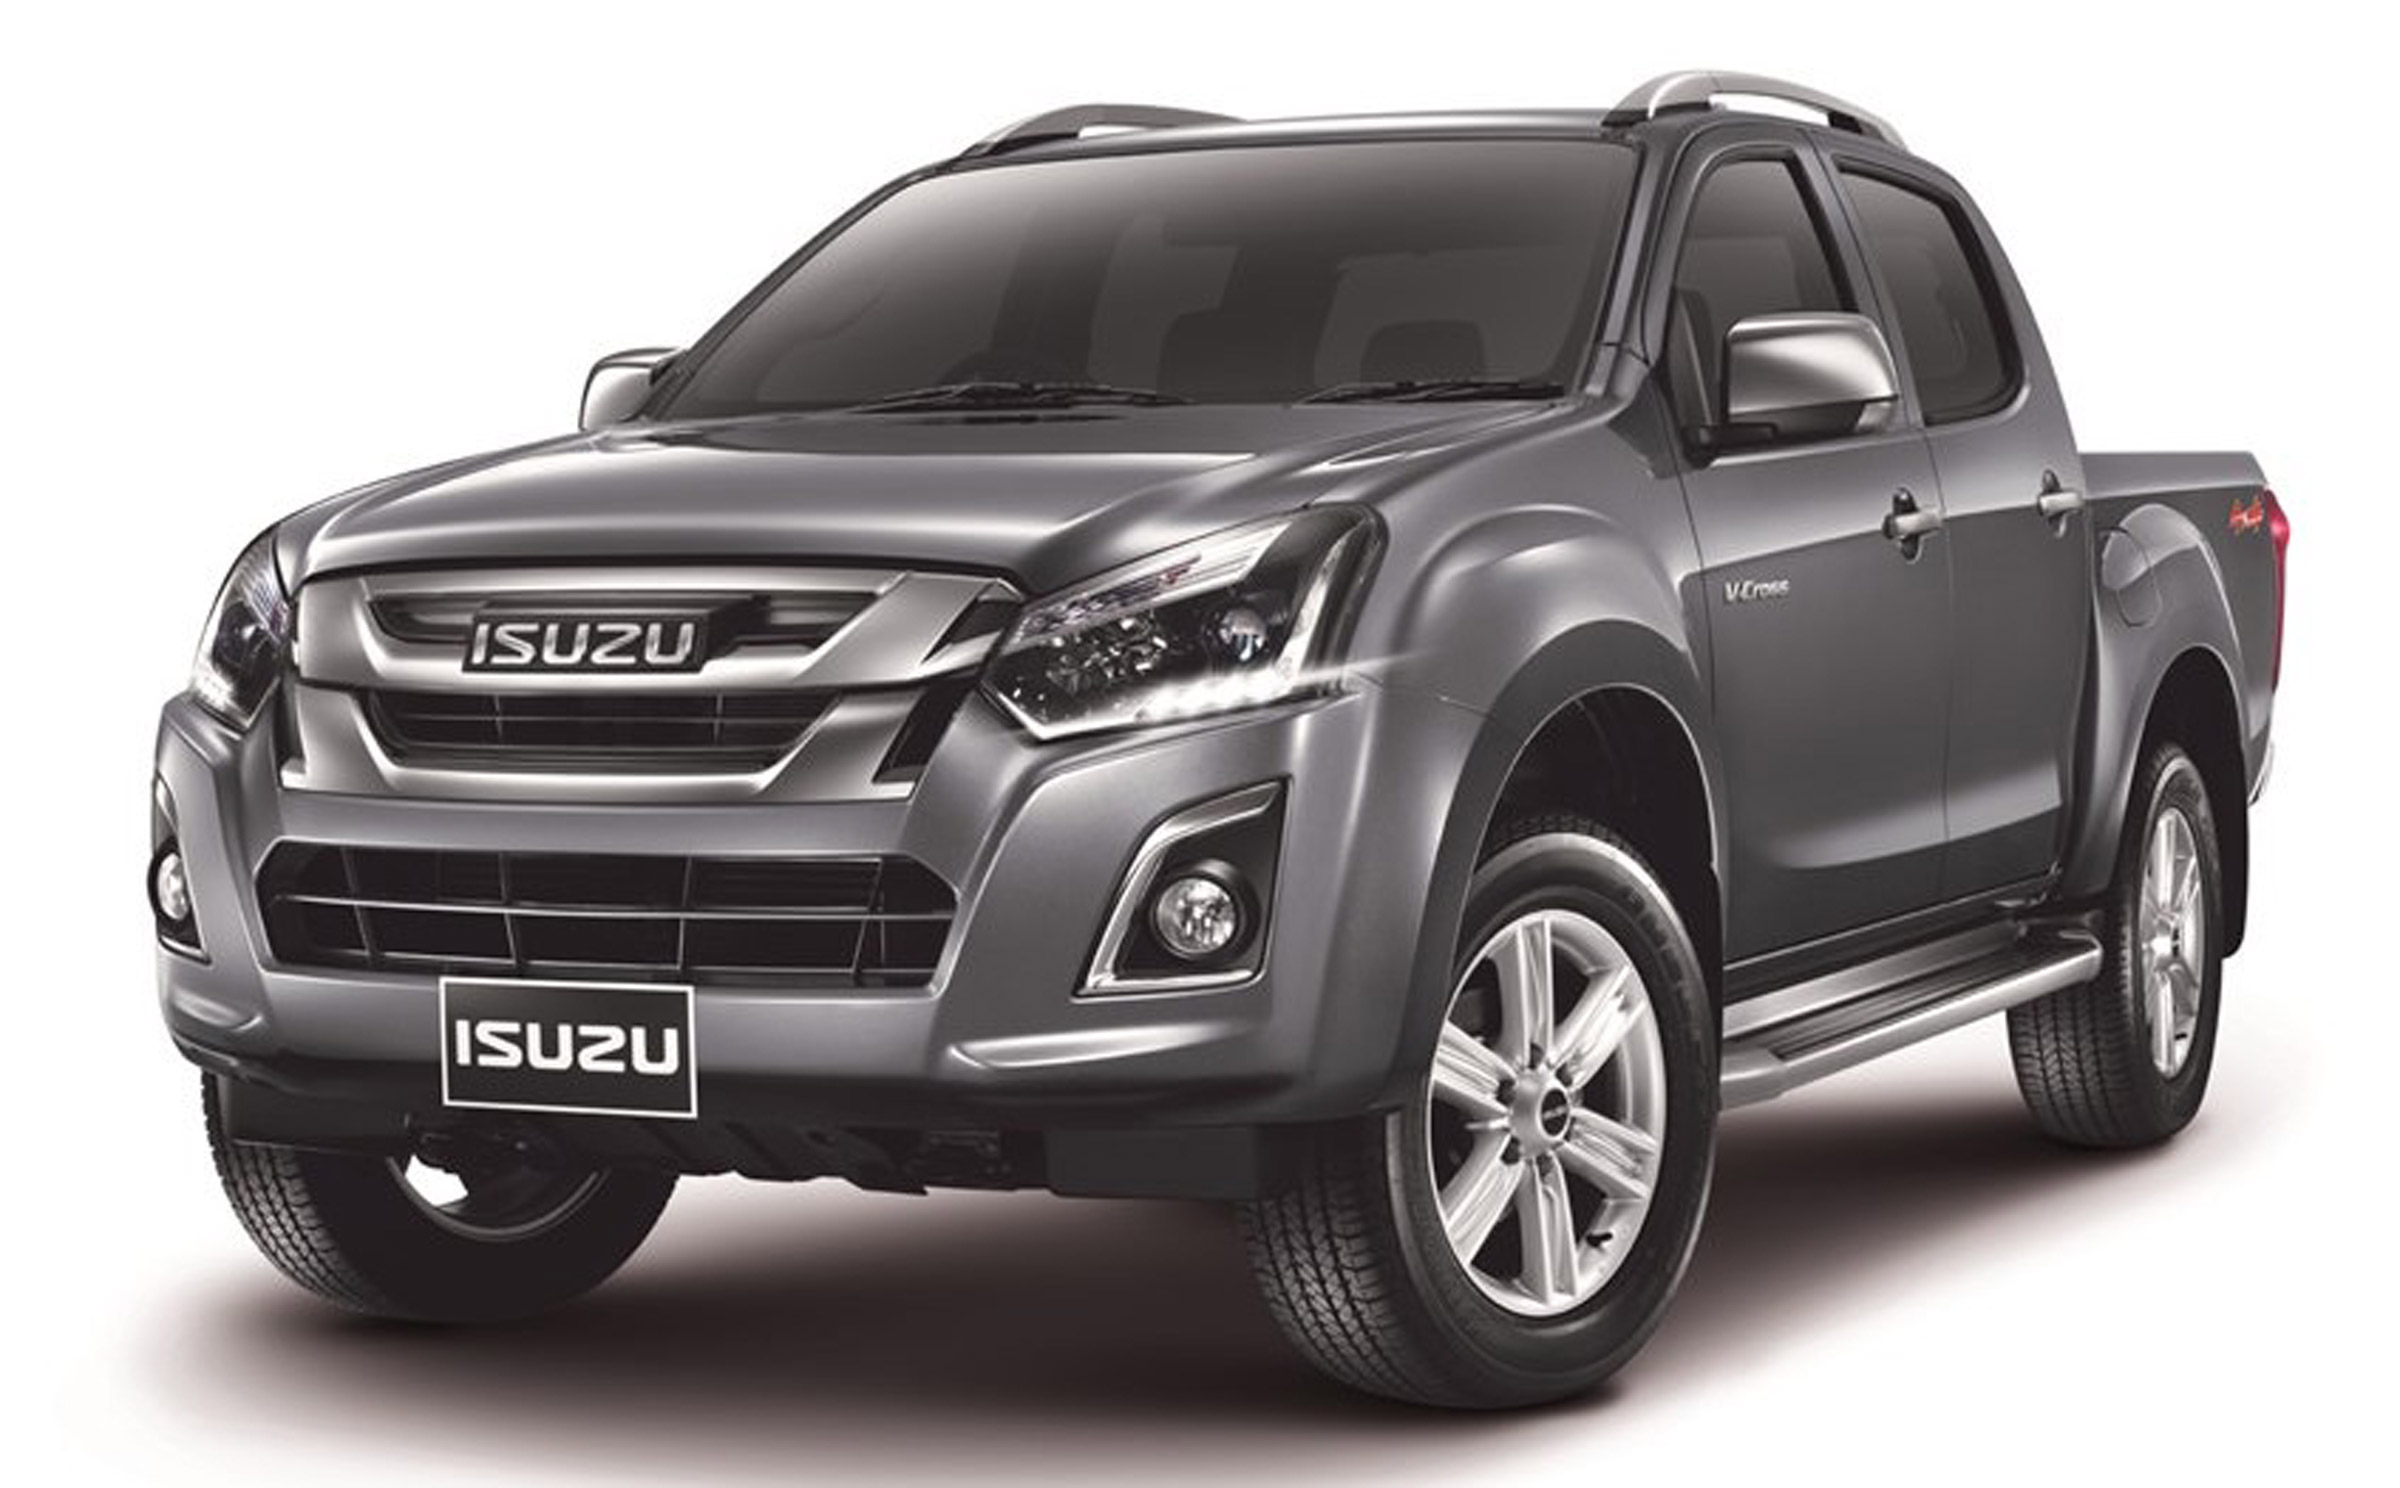 2016-isuzu-d-max-facelift-front-quarter-launched-in-thailand